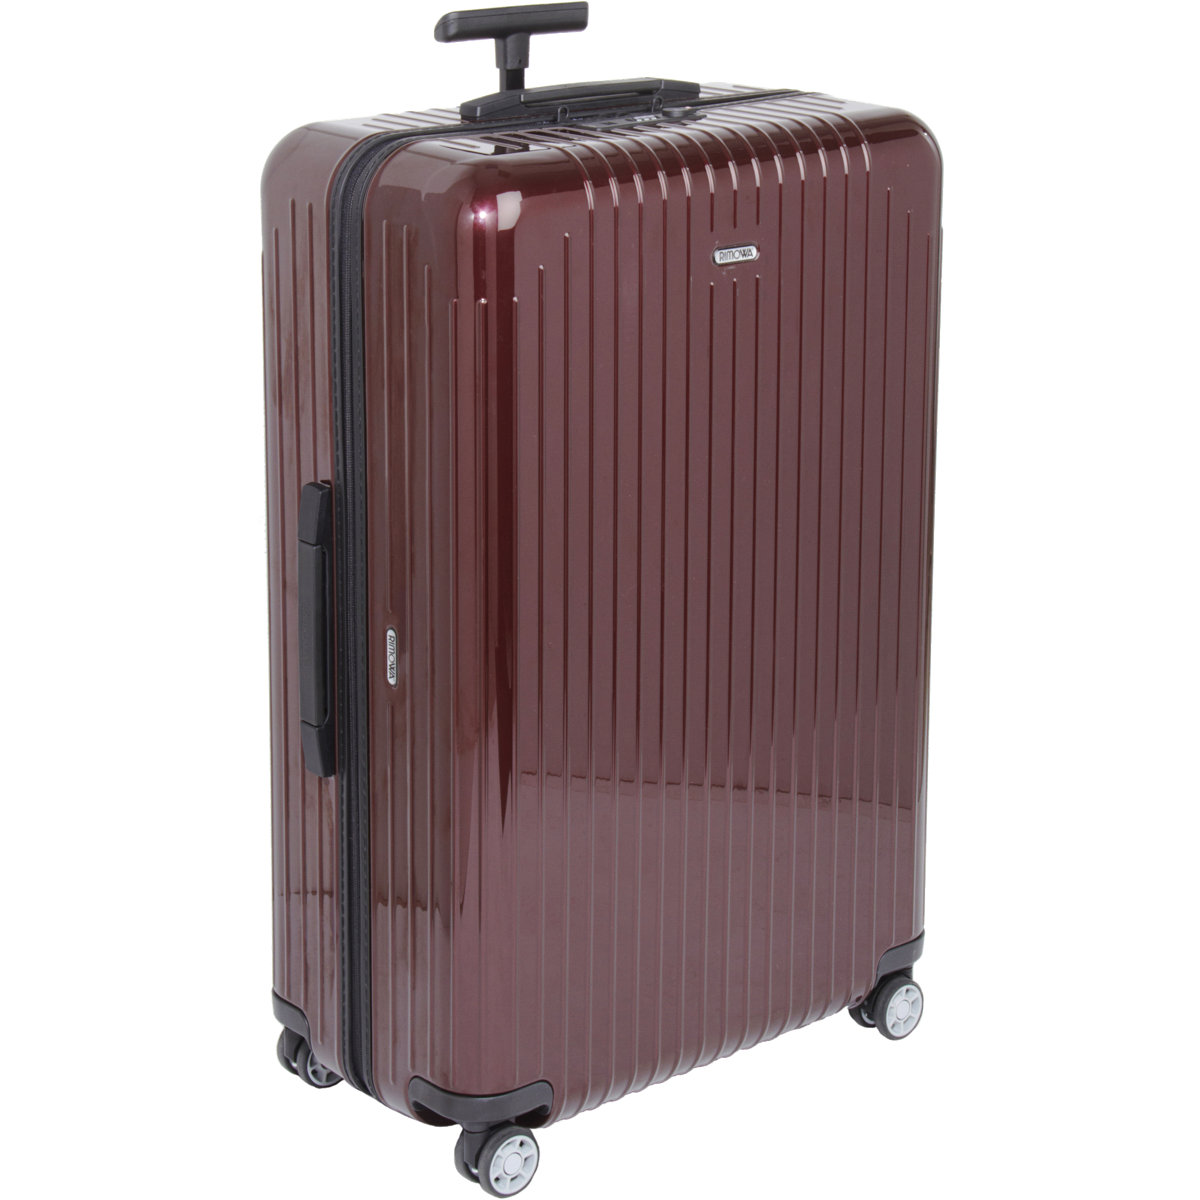 rimowa 29 salsa air multiwheel cabin trolley iata in red. Black Bedroom Furniture Sets. Home Design Ideas